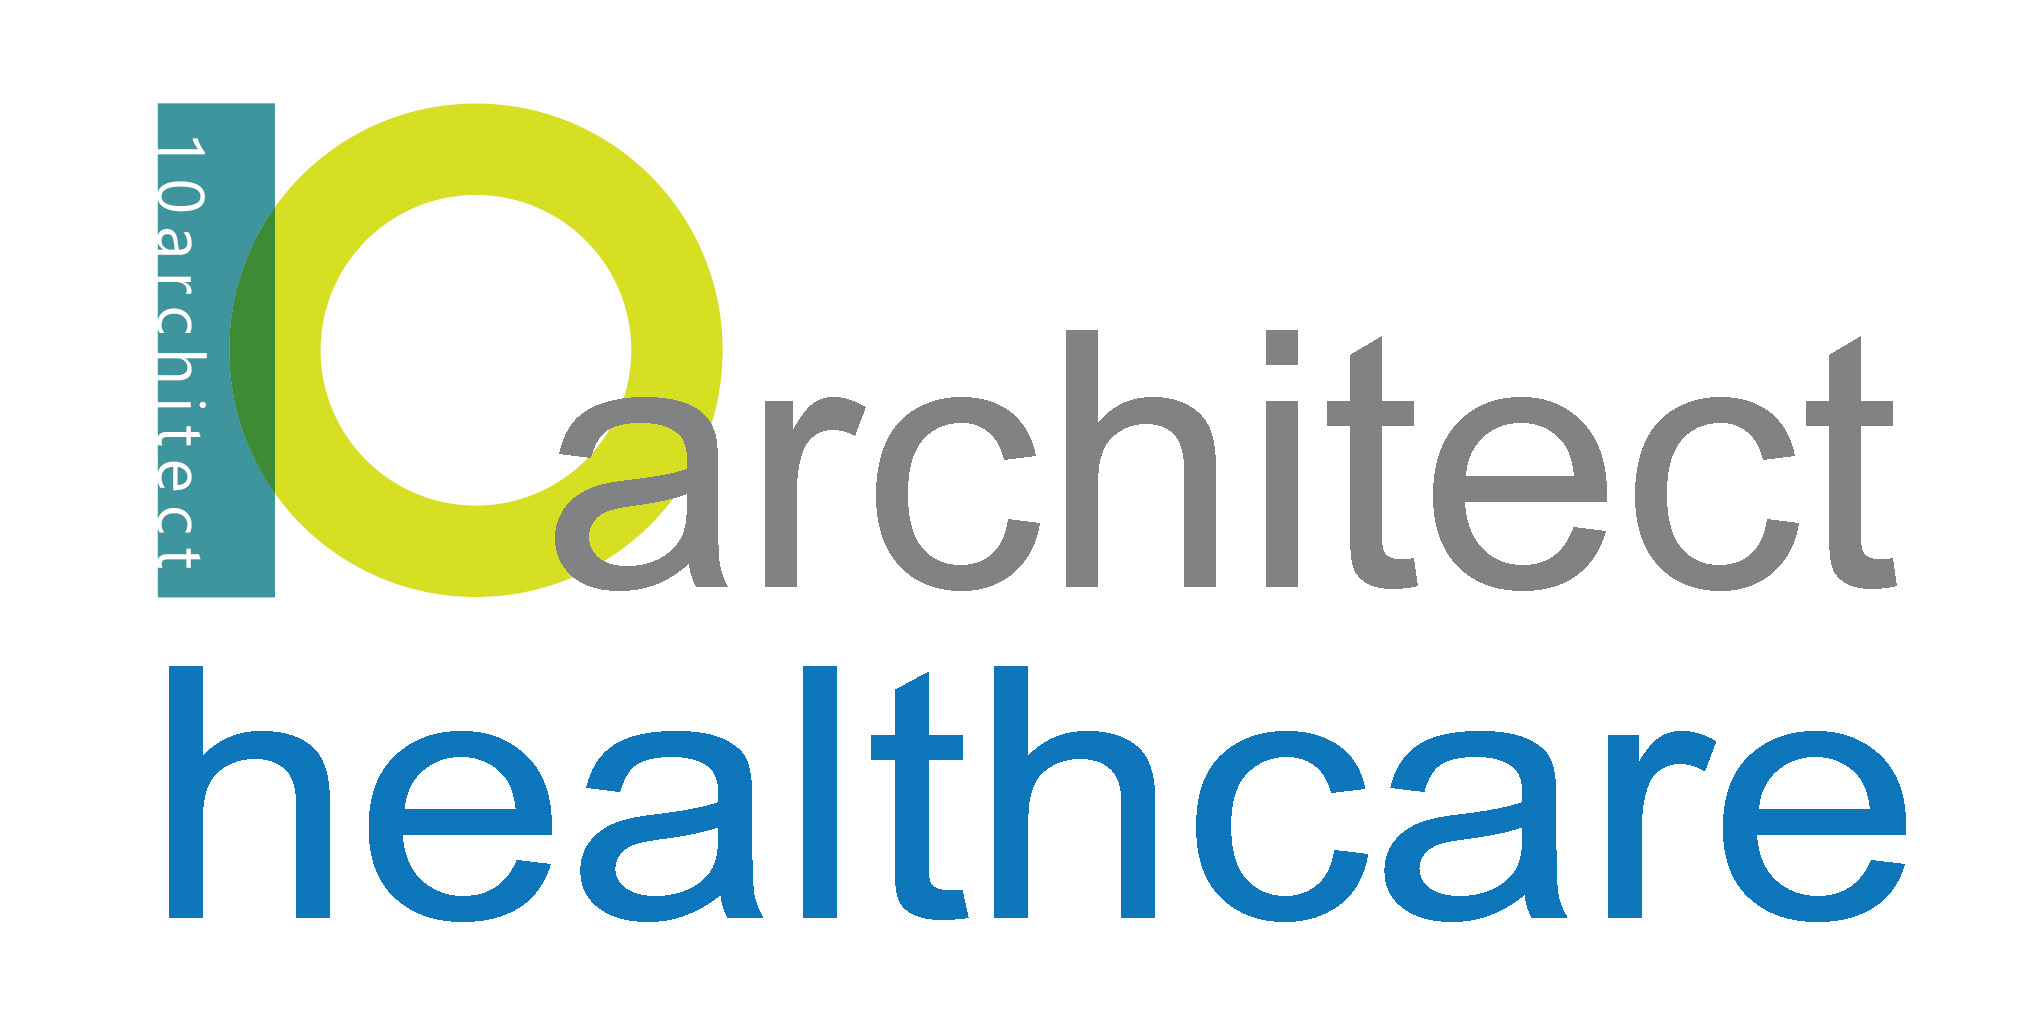 10architect healthcare